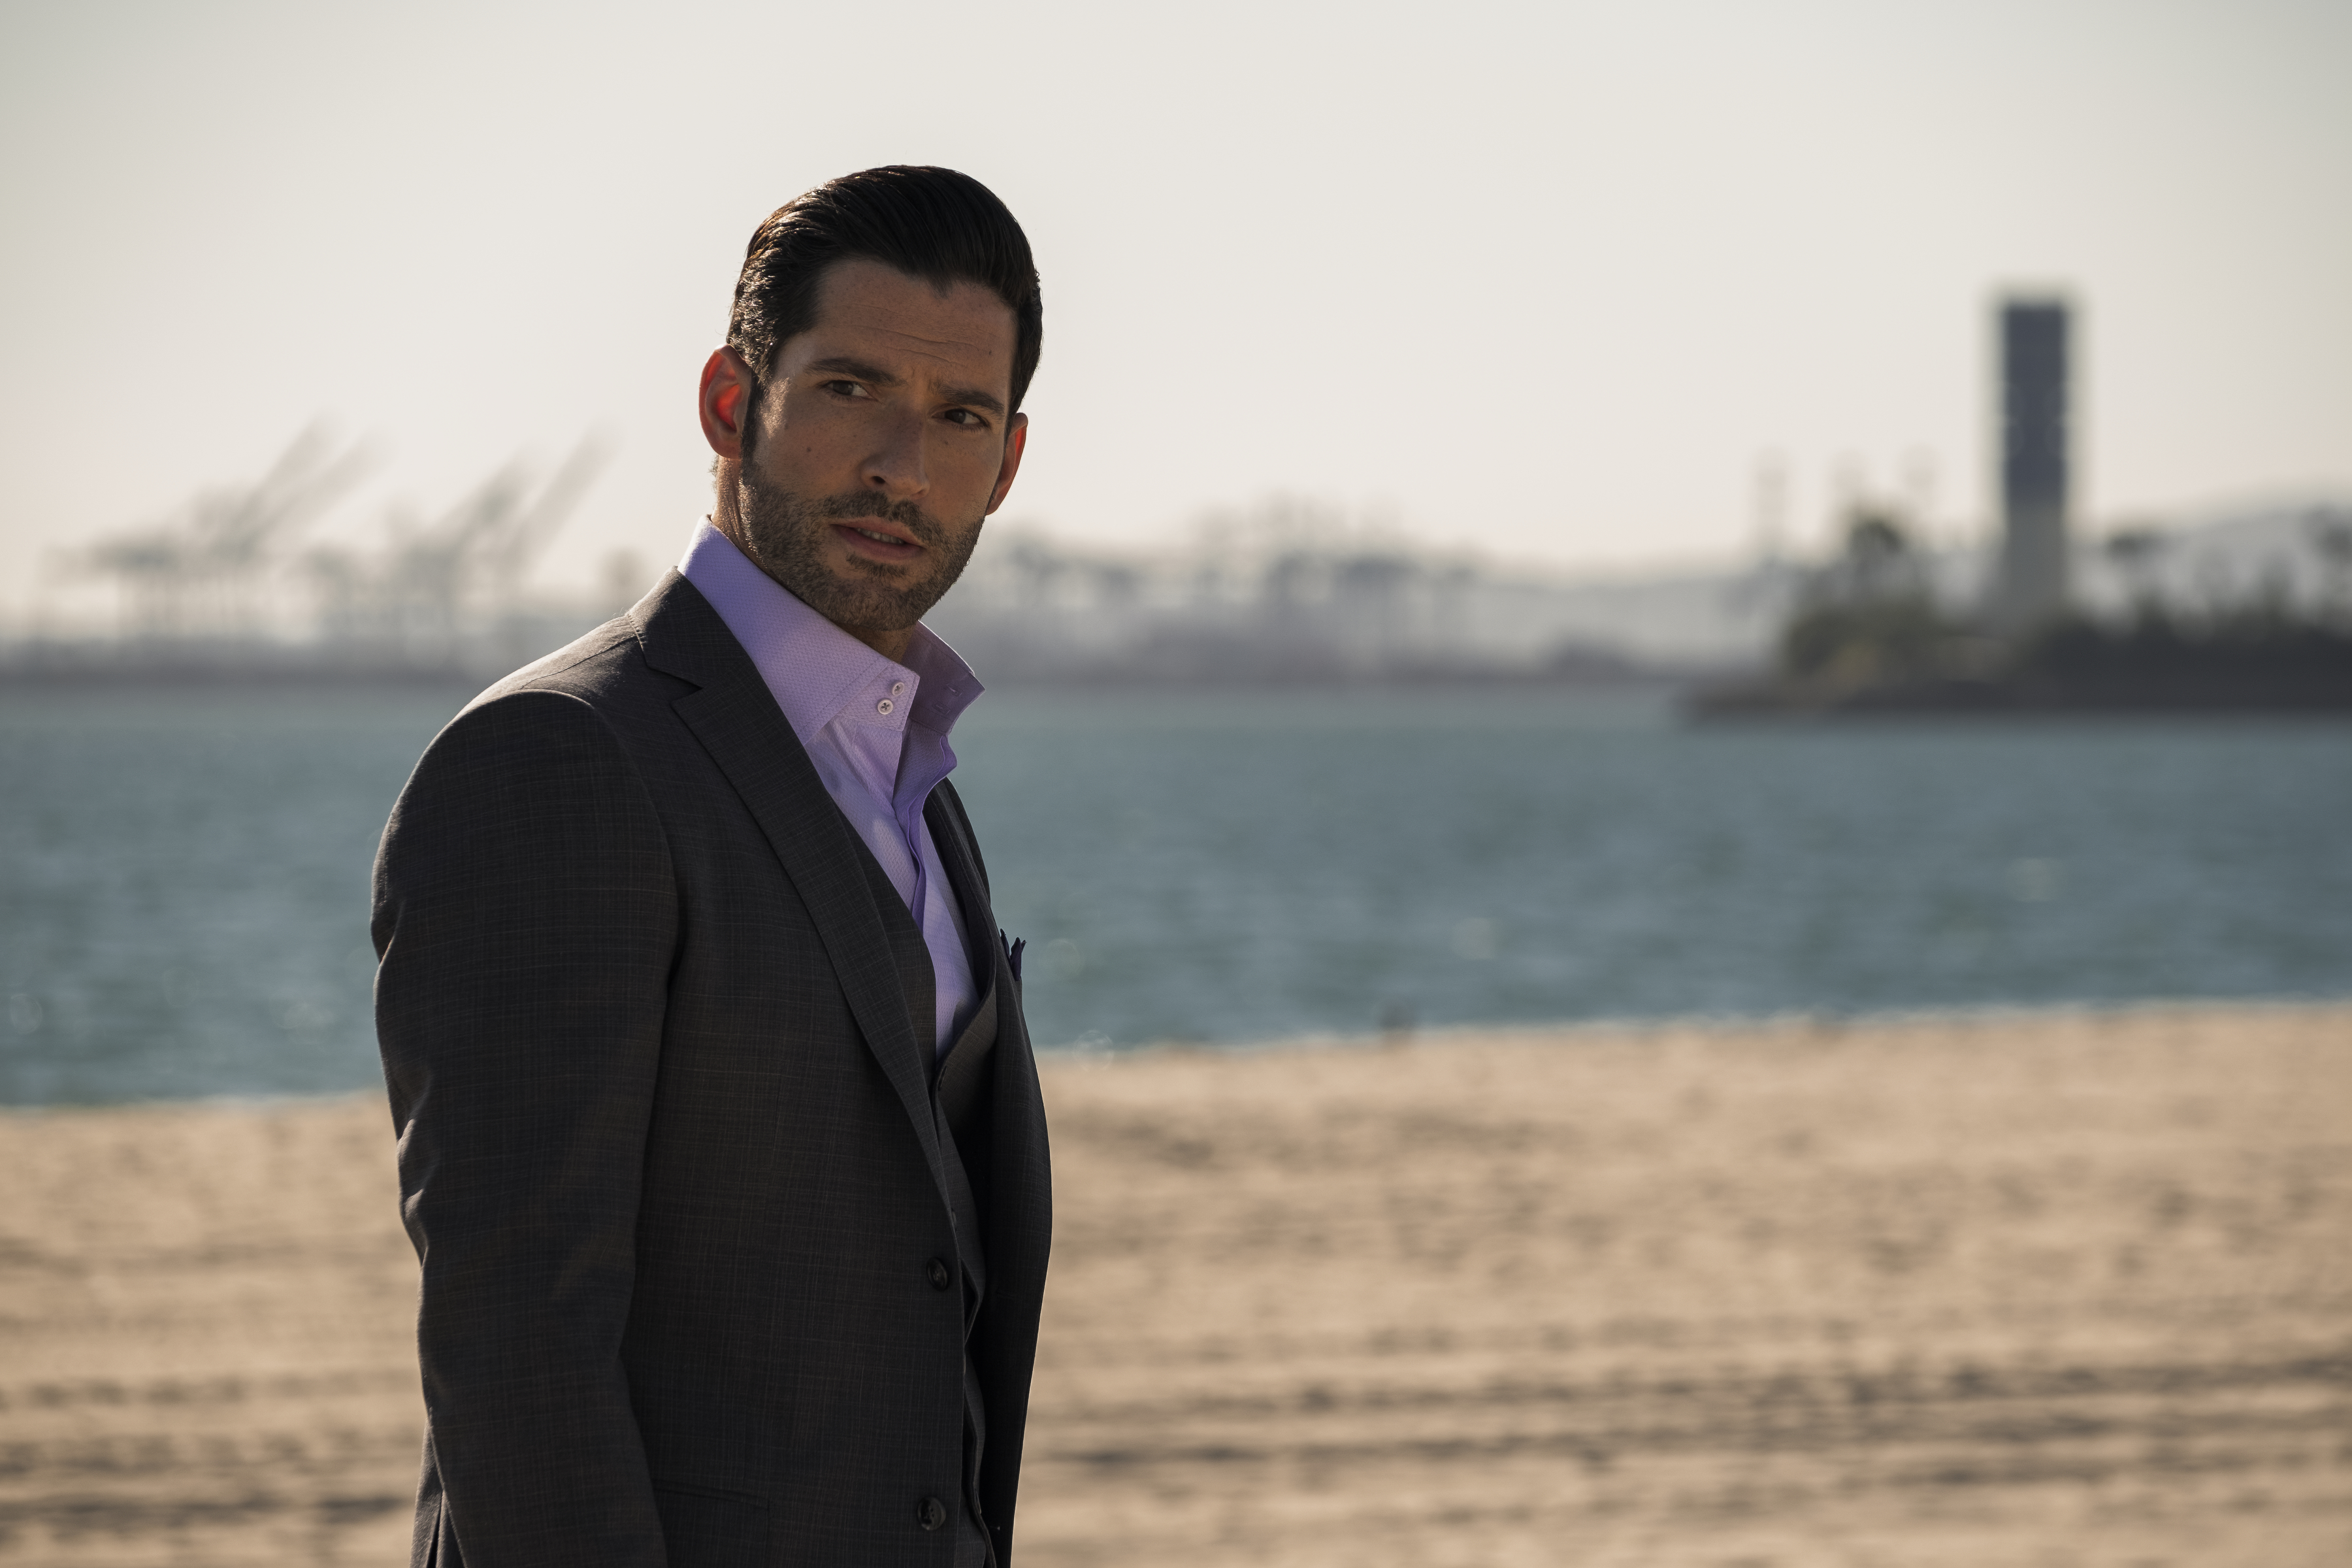 Lucifer Season 5 Hd Tv Shows 4k Wallpapers Images Backgrounds Photos And Pictures